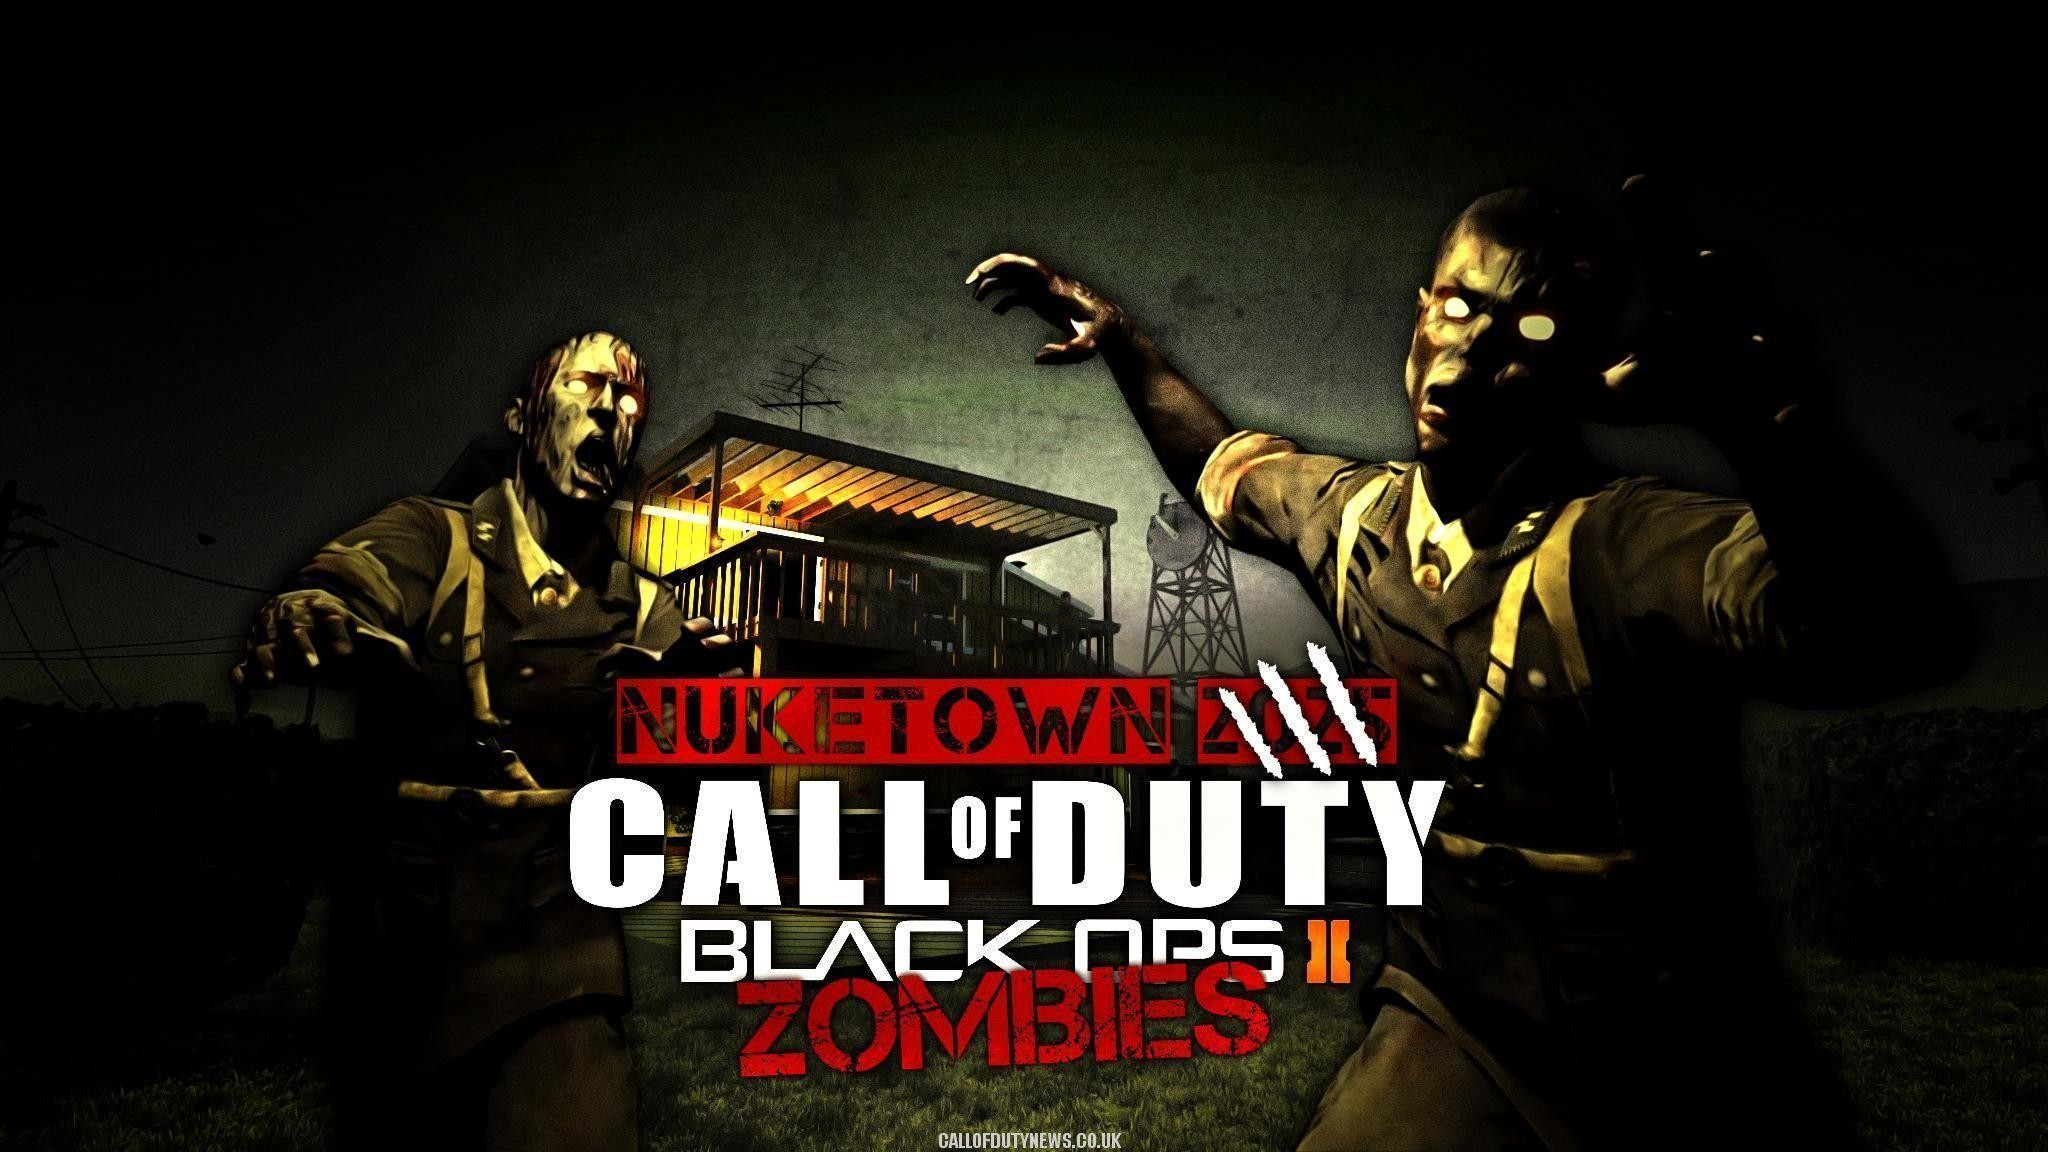 Call Of Duty Black Ops 2 Zombies Wallpapers Wallpaper   Black HD .